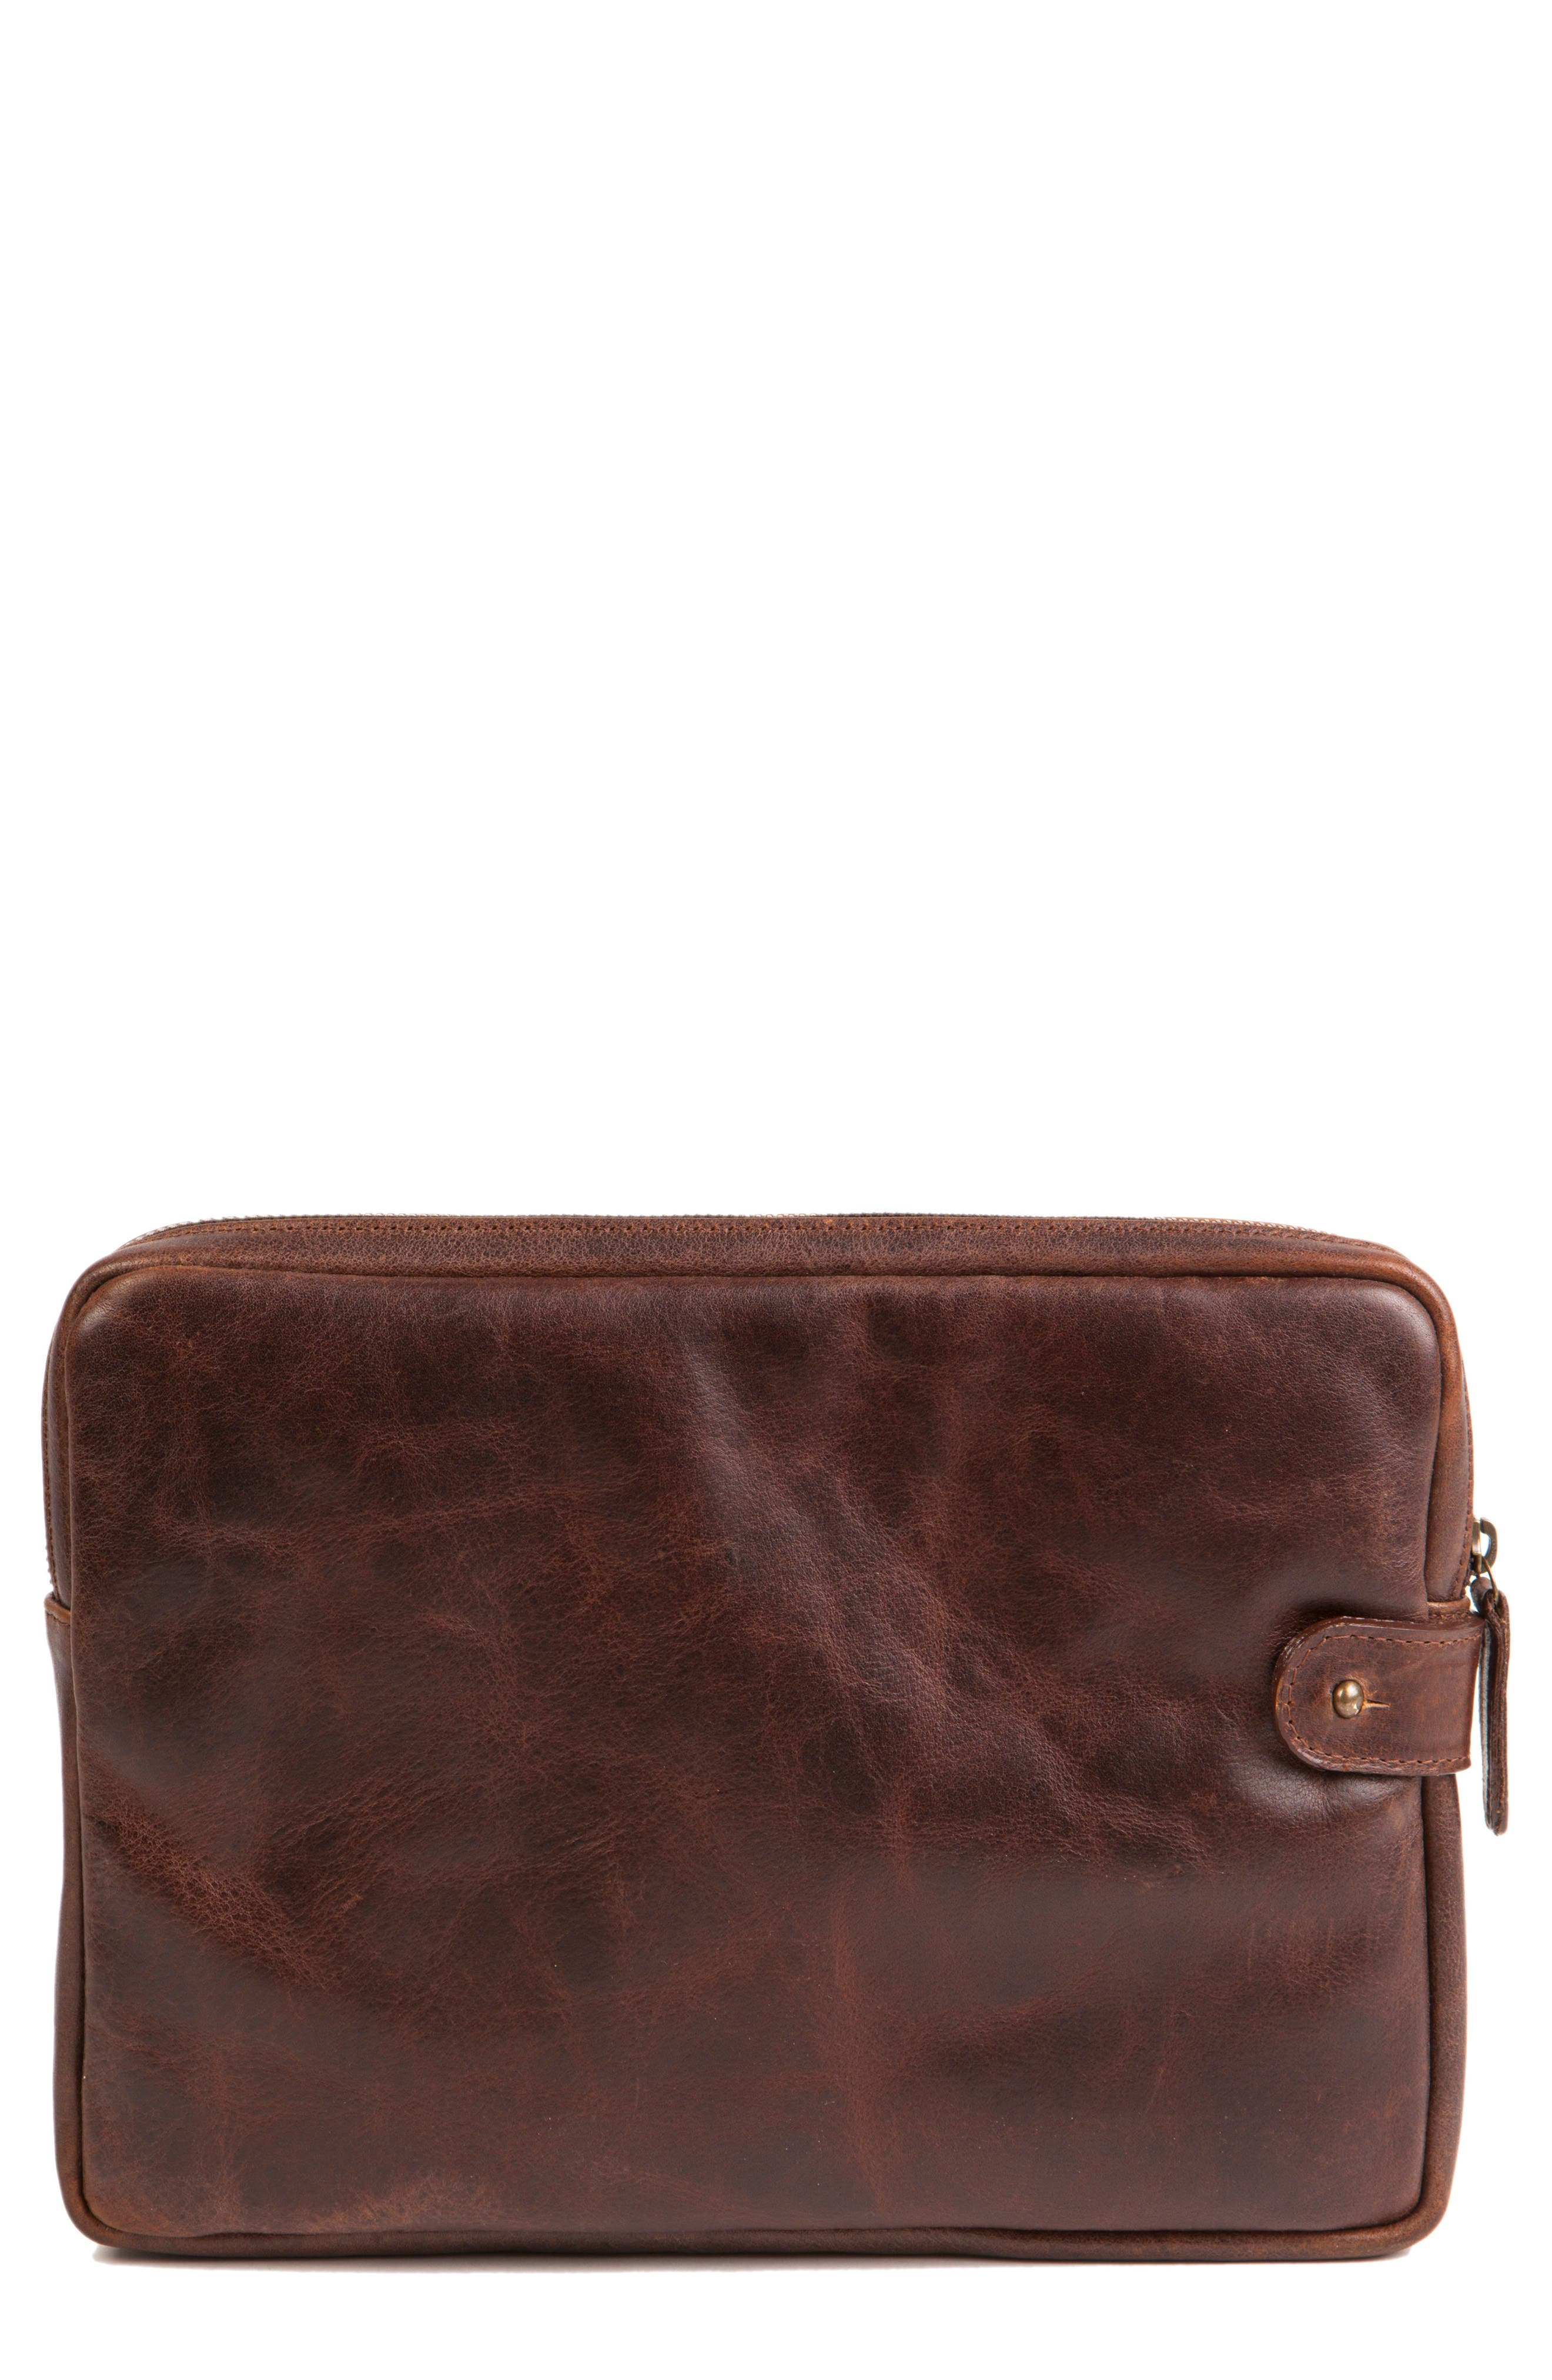 Leather Tablet Sleeve,                         Main,                         color, 206